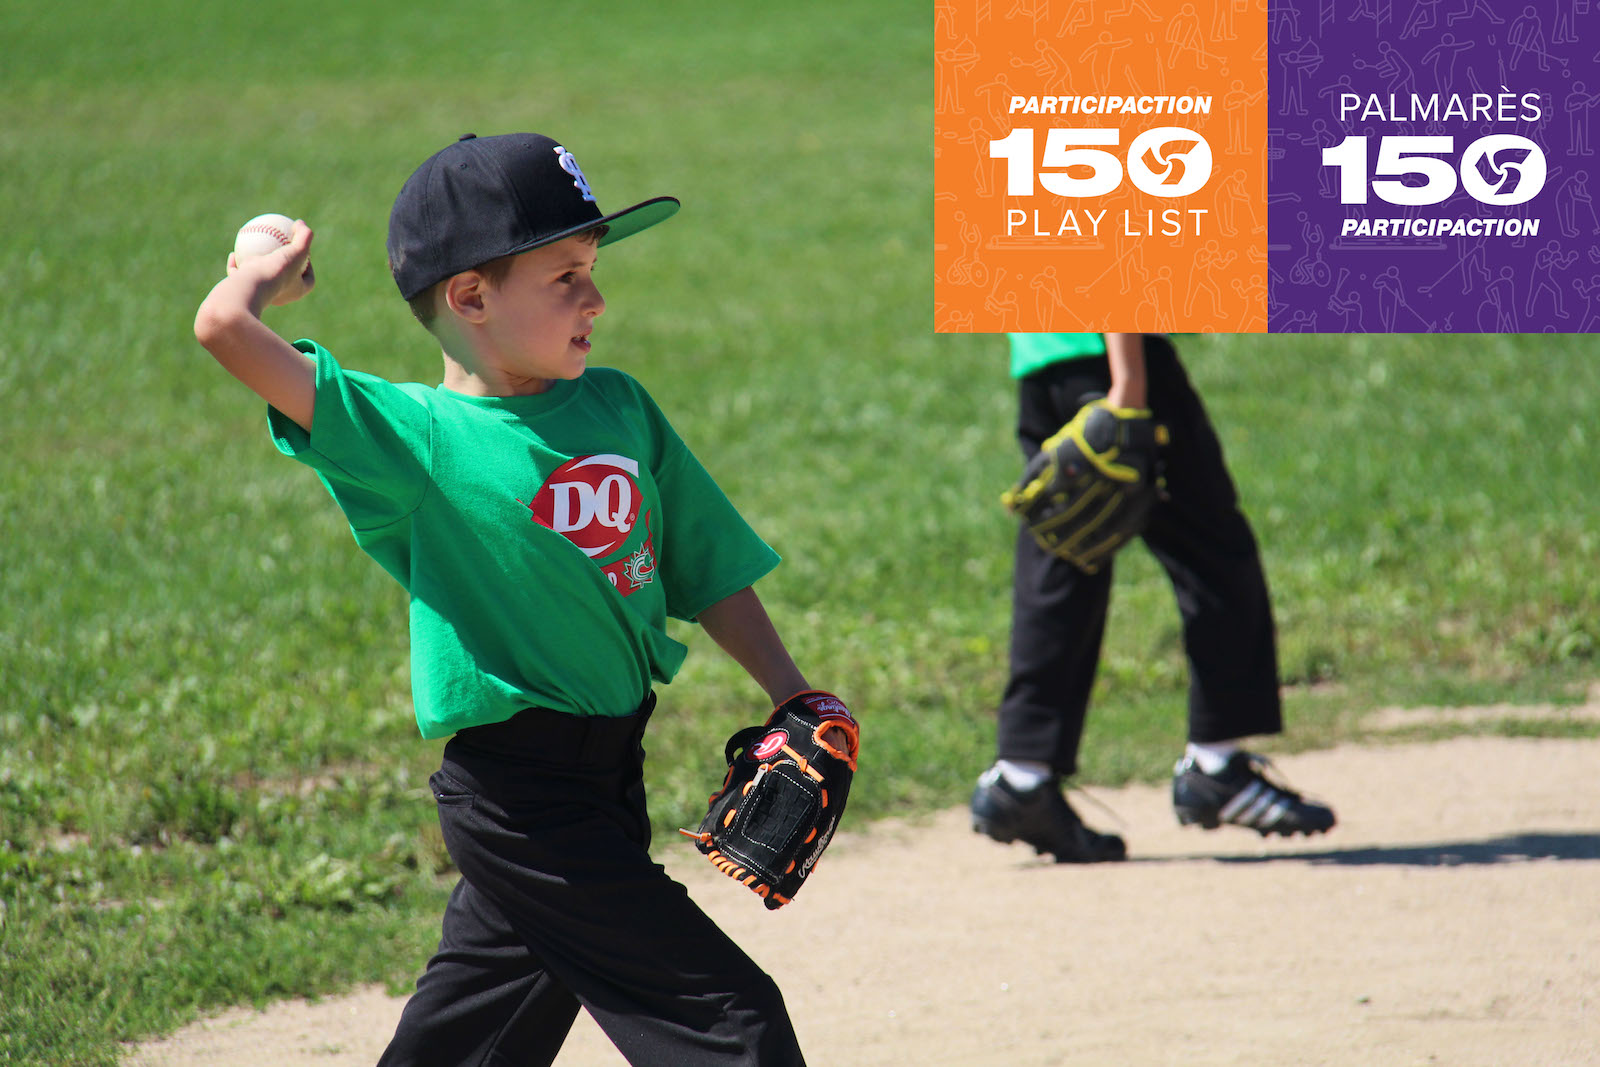 Help us celebrate Baseball's #150PlayList Sport Day on June 21st!